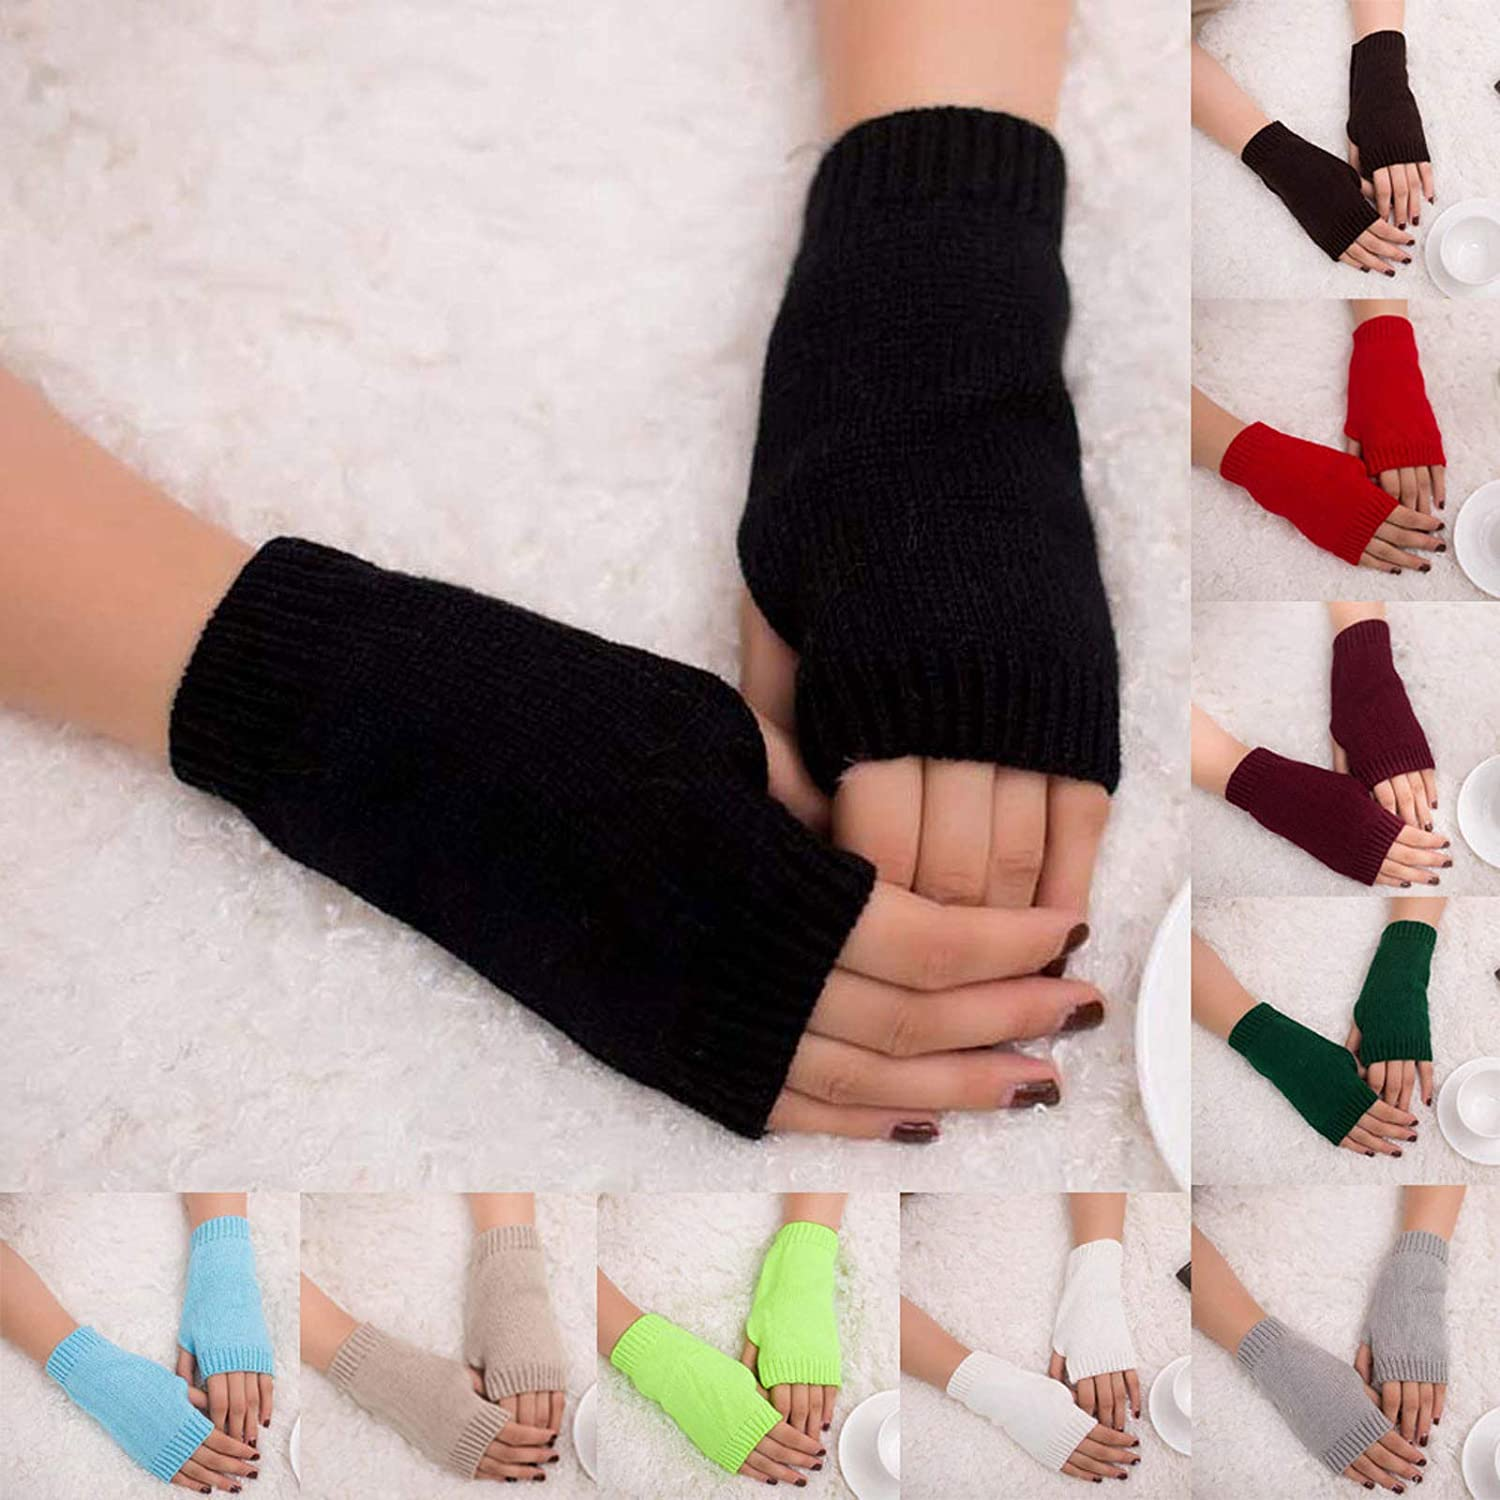 OSTELY Women Mitten Winter Warm Soft Solid Color Knitted Arm Fingerless Gloves